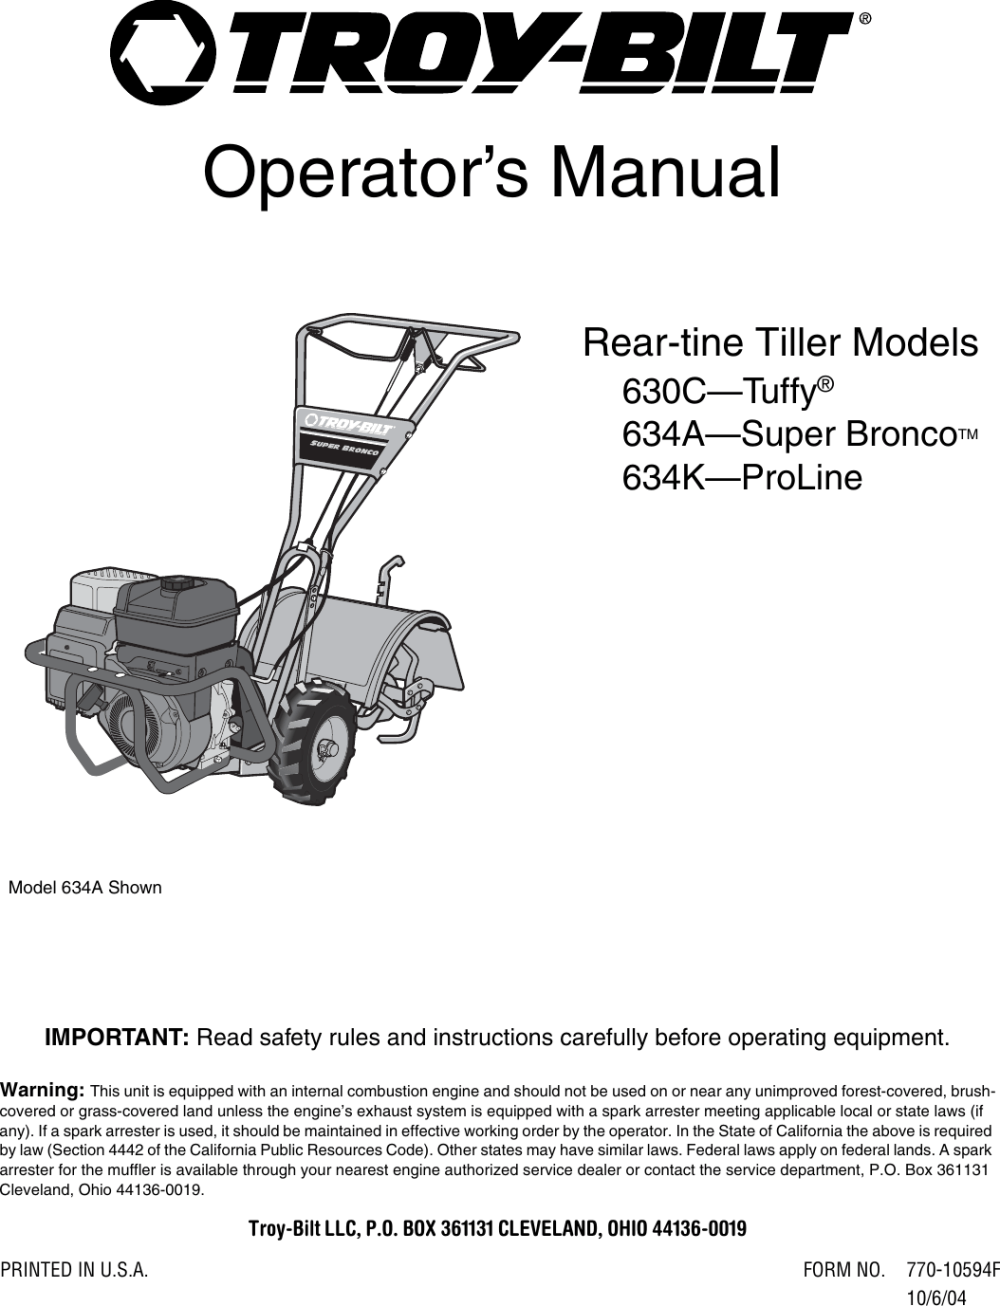 medium resolution of troy bilt 634k proline users manual 770 10594f starter rope troy bilt tiller diagram